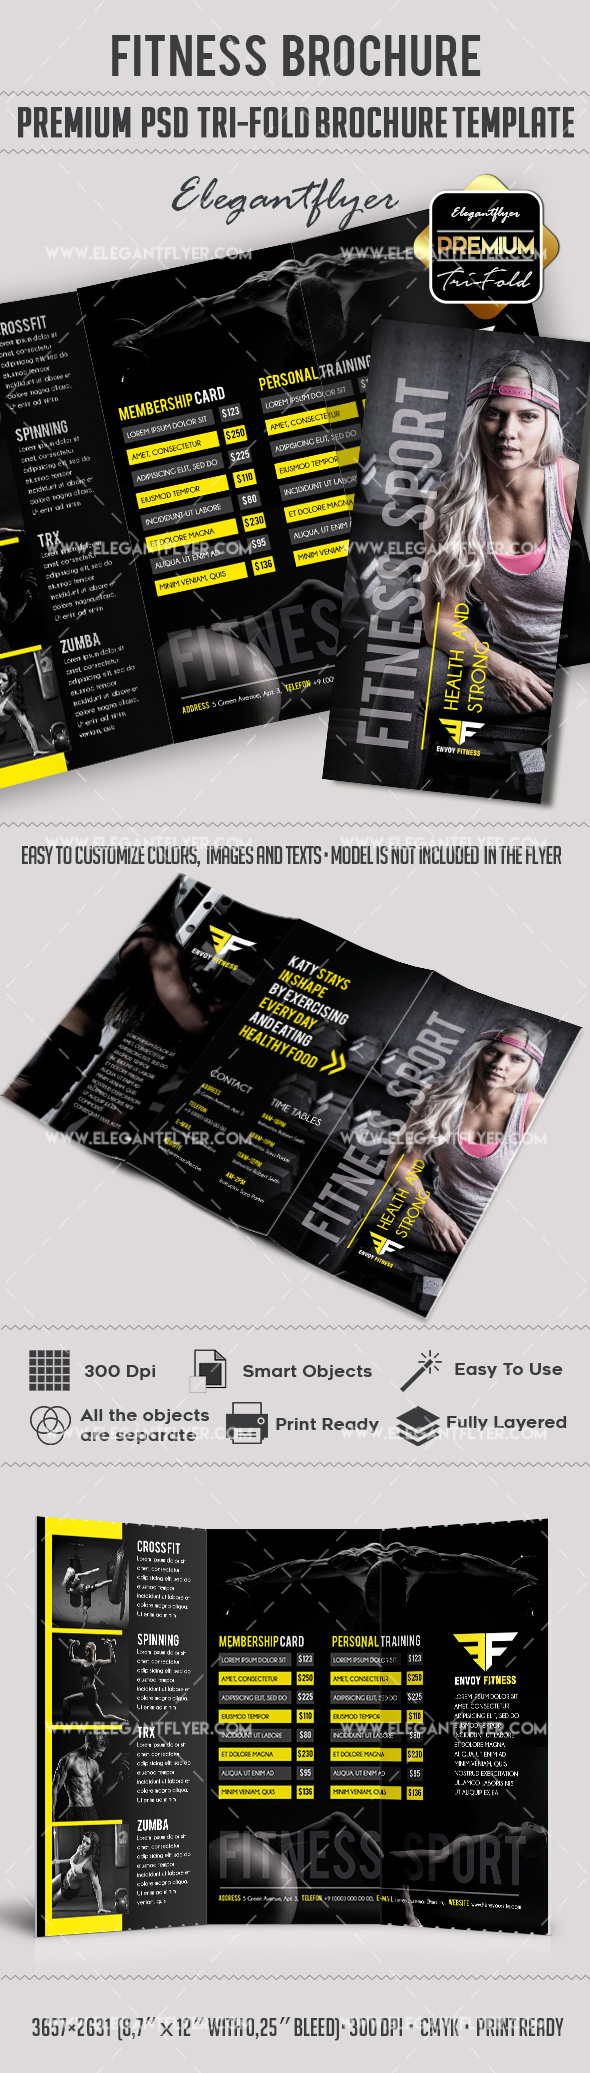 Fitness Premium TriFold PSD Brochure Template by ElegantFlyer – Gym Brochure Templates